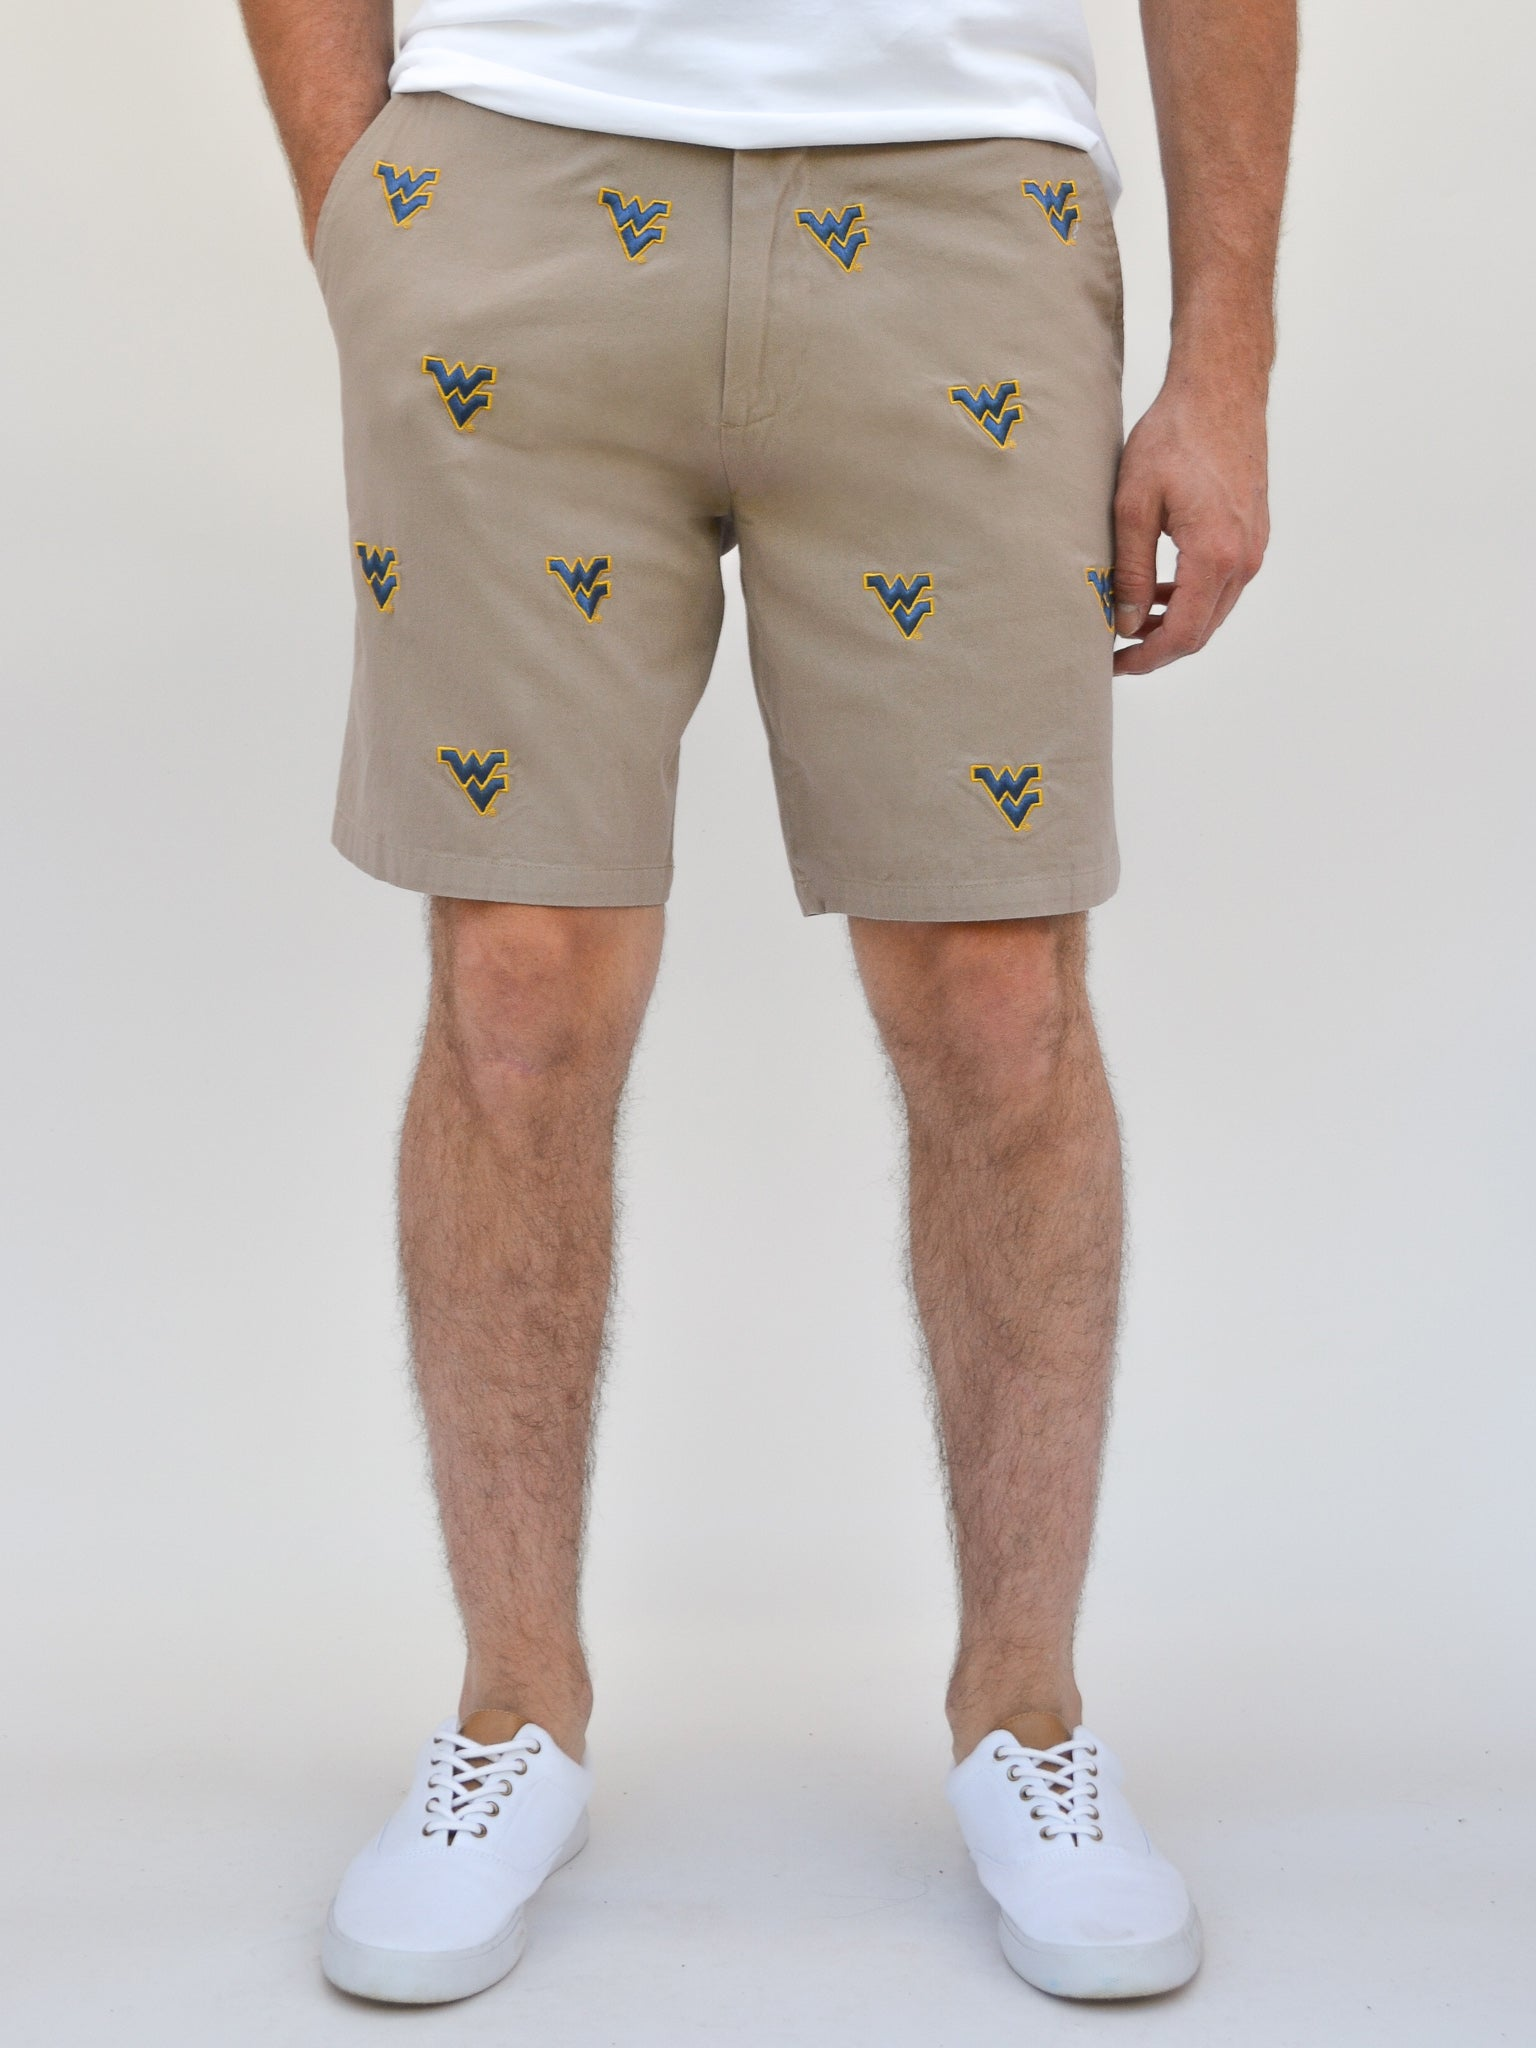 West Virginia Khaki Shorts